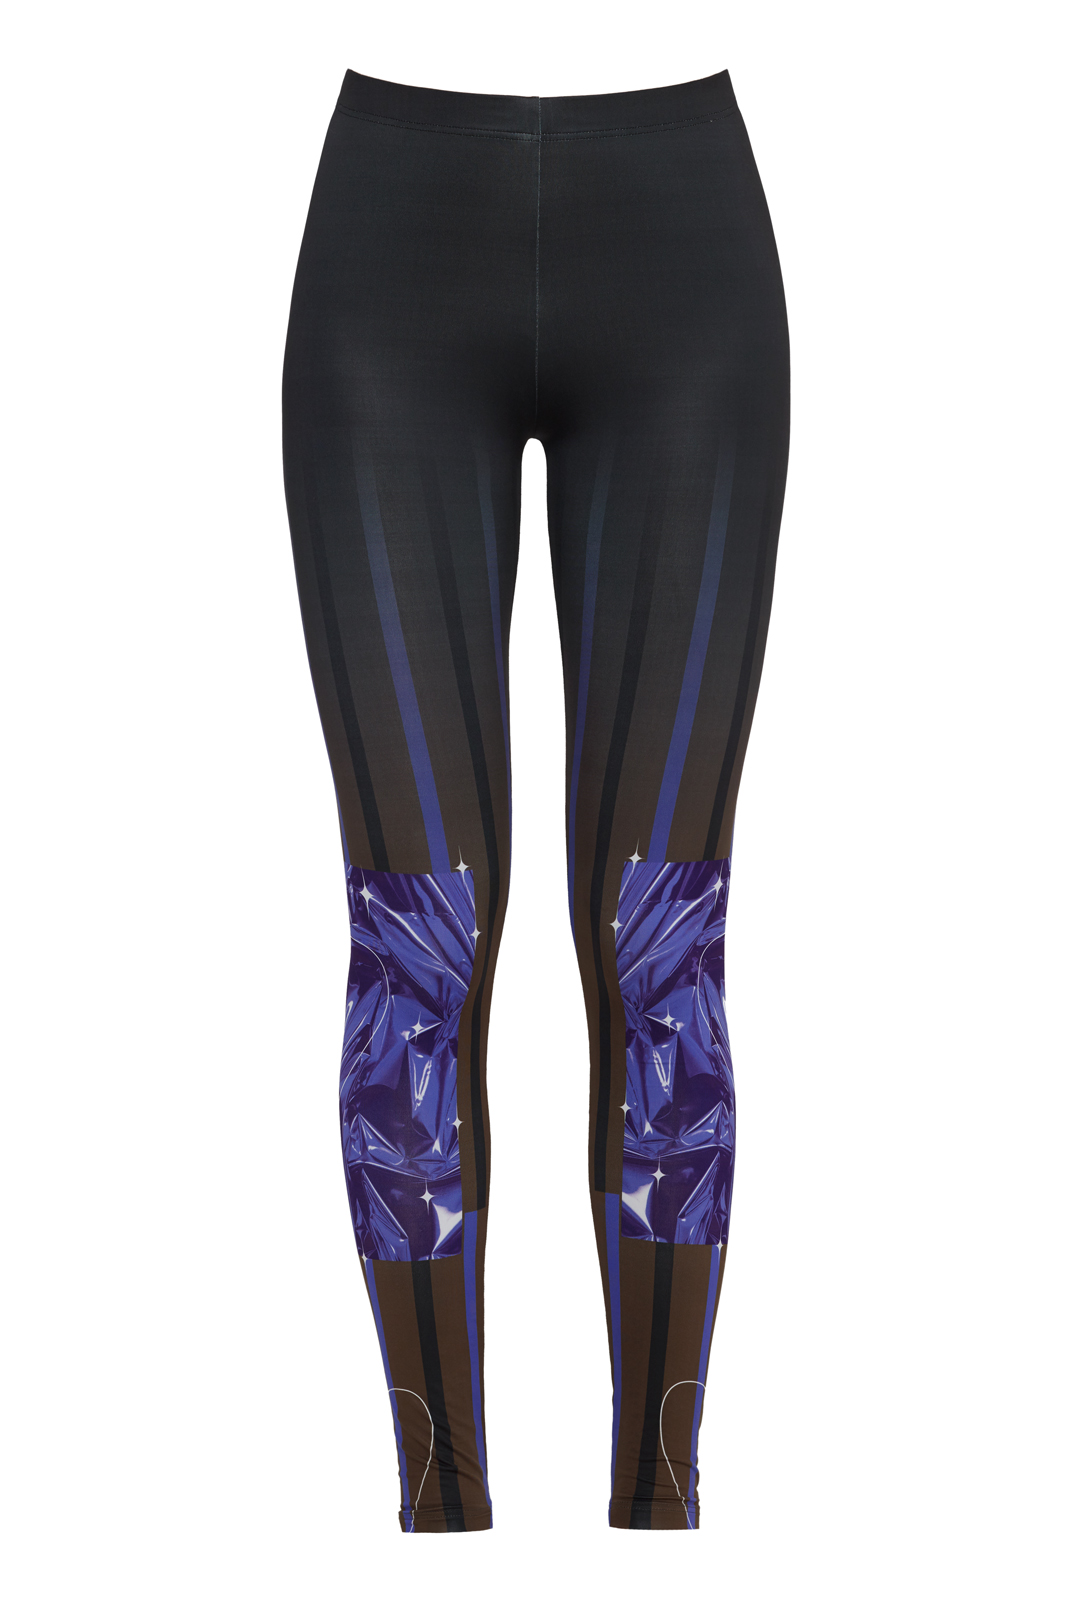 MIRA Leggings by Naked Bruce on curated-crowd.com